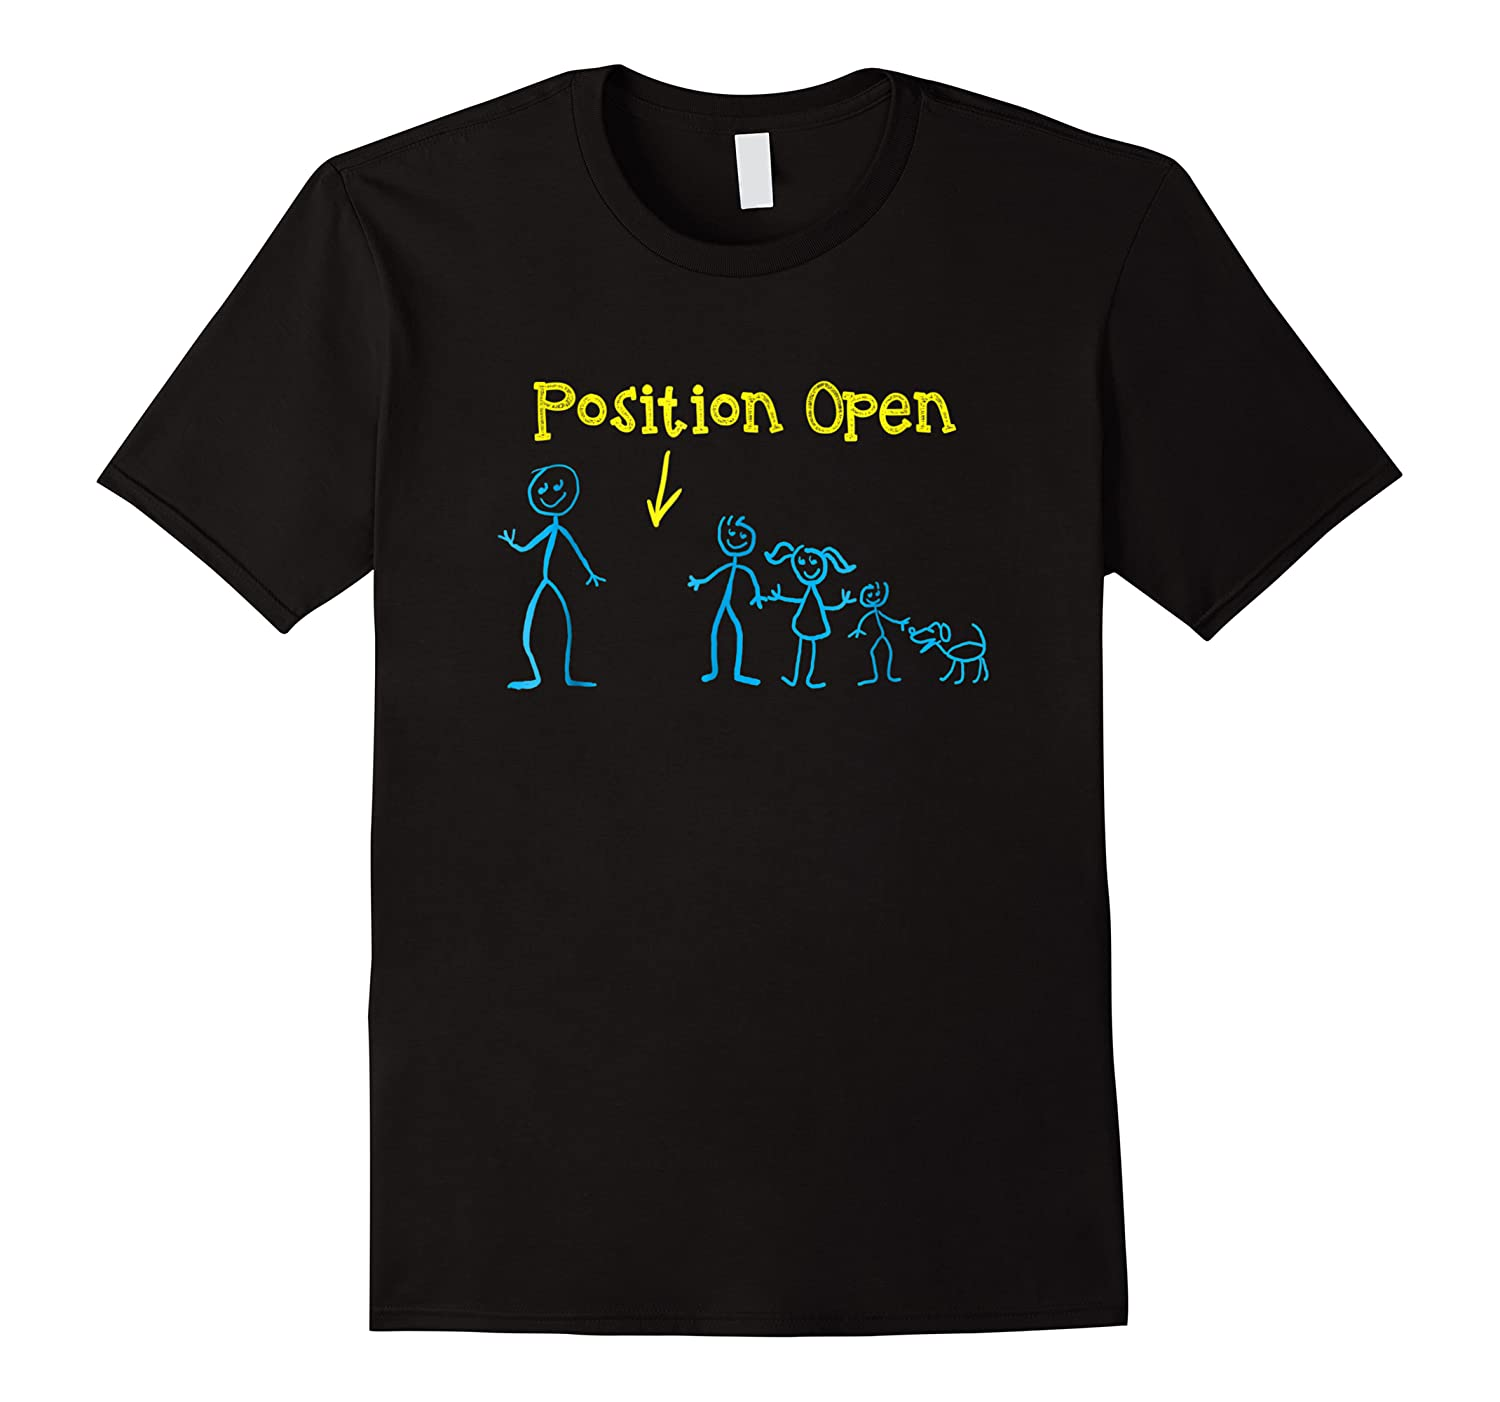 S Funny Single Dad T Shirt Position Open By Zany Brainy